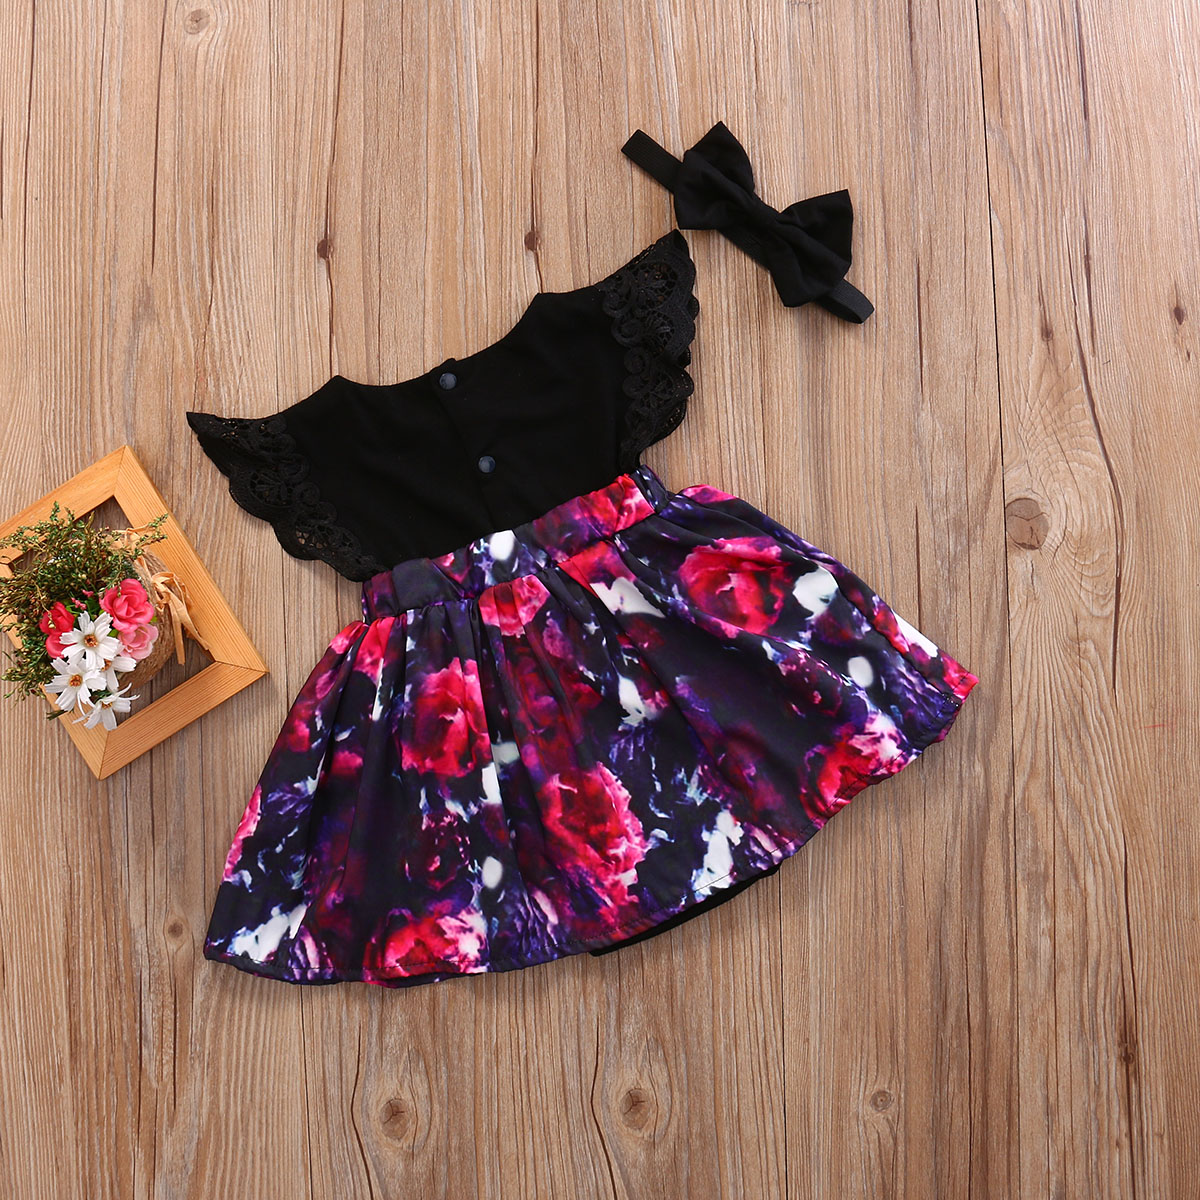 2pcs Toddelr Kid Baby Girl Sister Matching lace Floral petal sleeve o-neck Romper Dress Outfits +black bow headband Set A